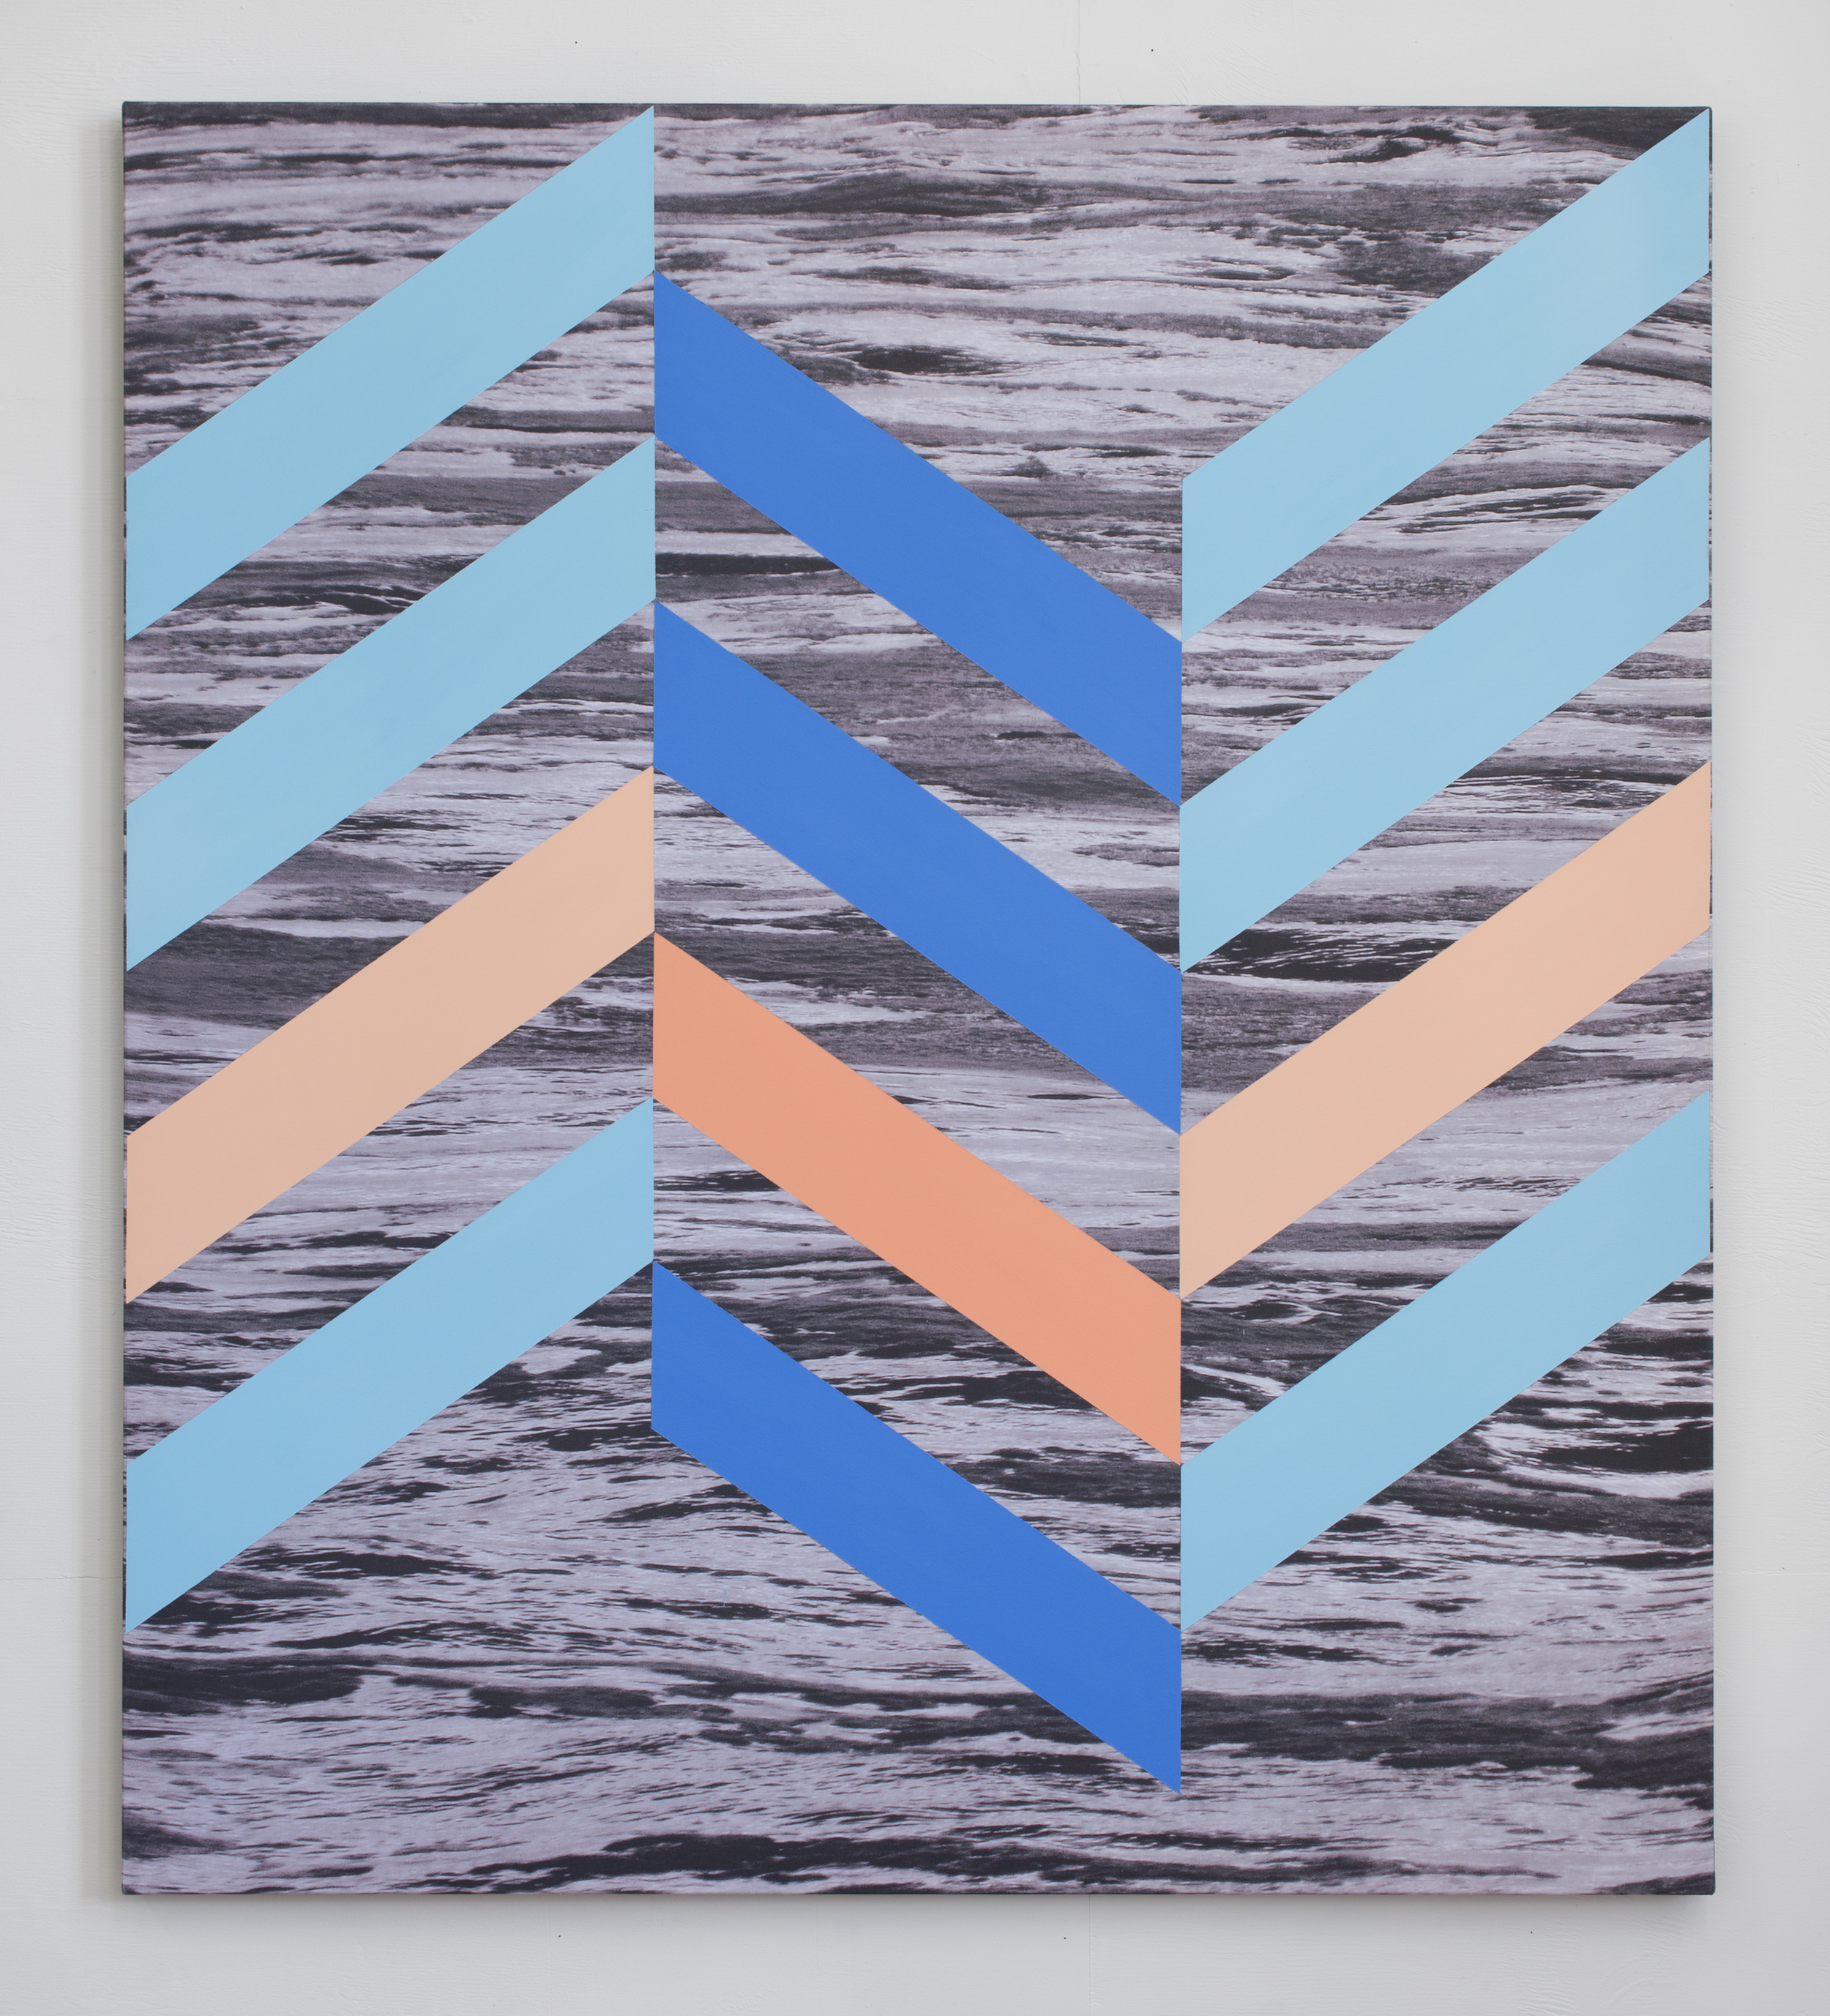 Pacific #1    2015    Pigment ink print and acrylic on canvas    137x 121.5cm